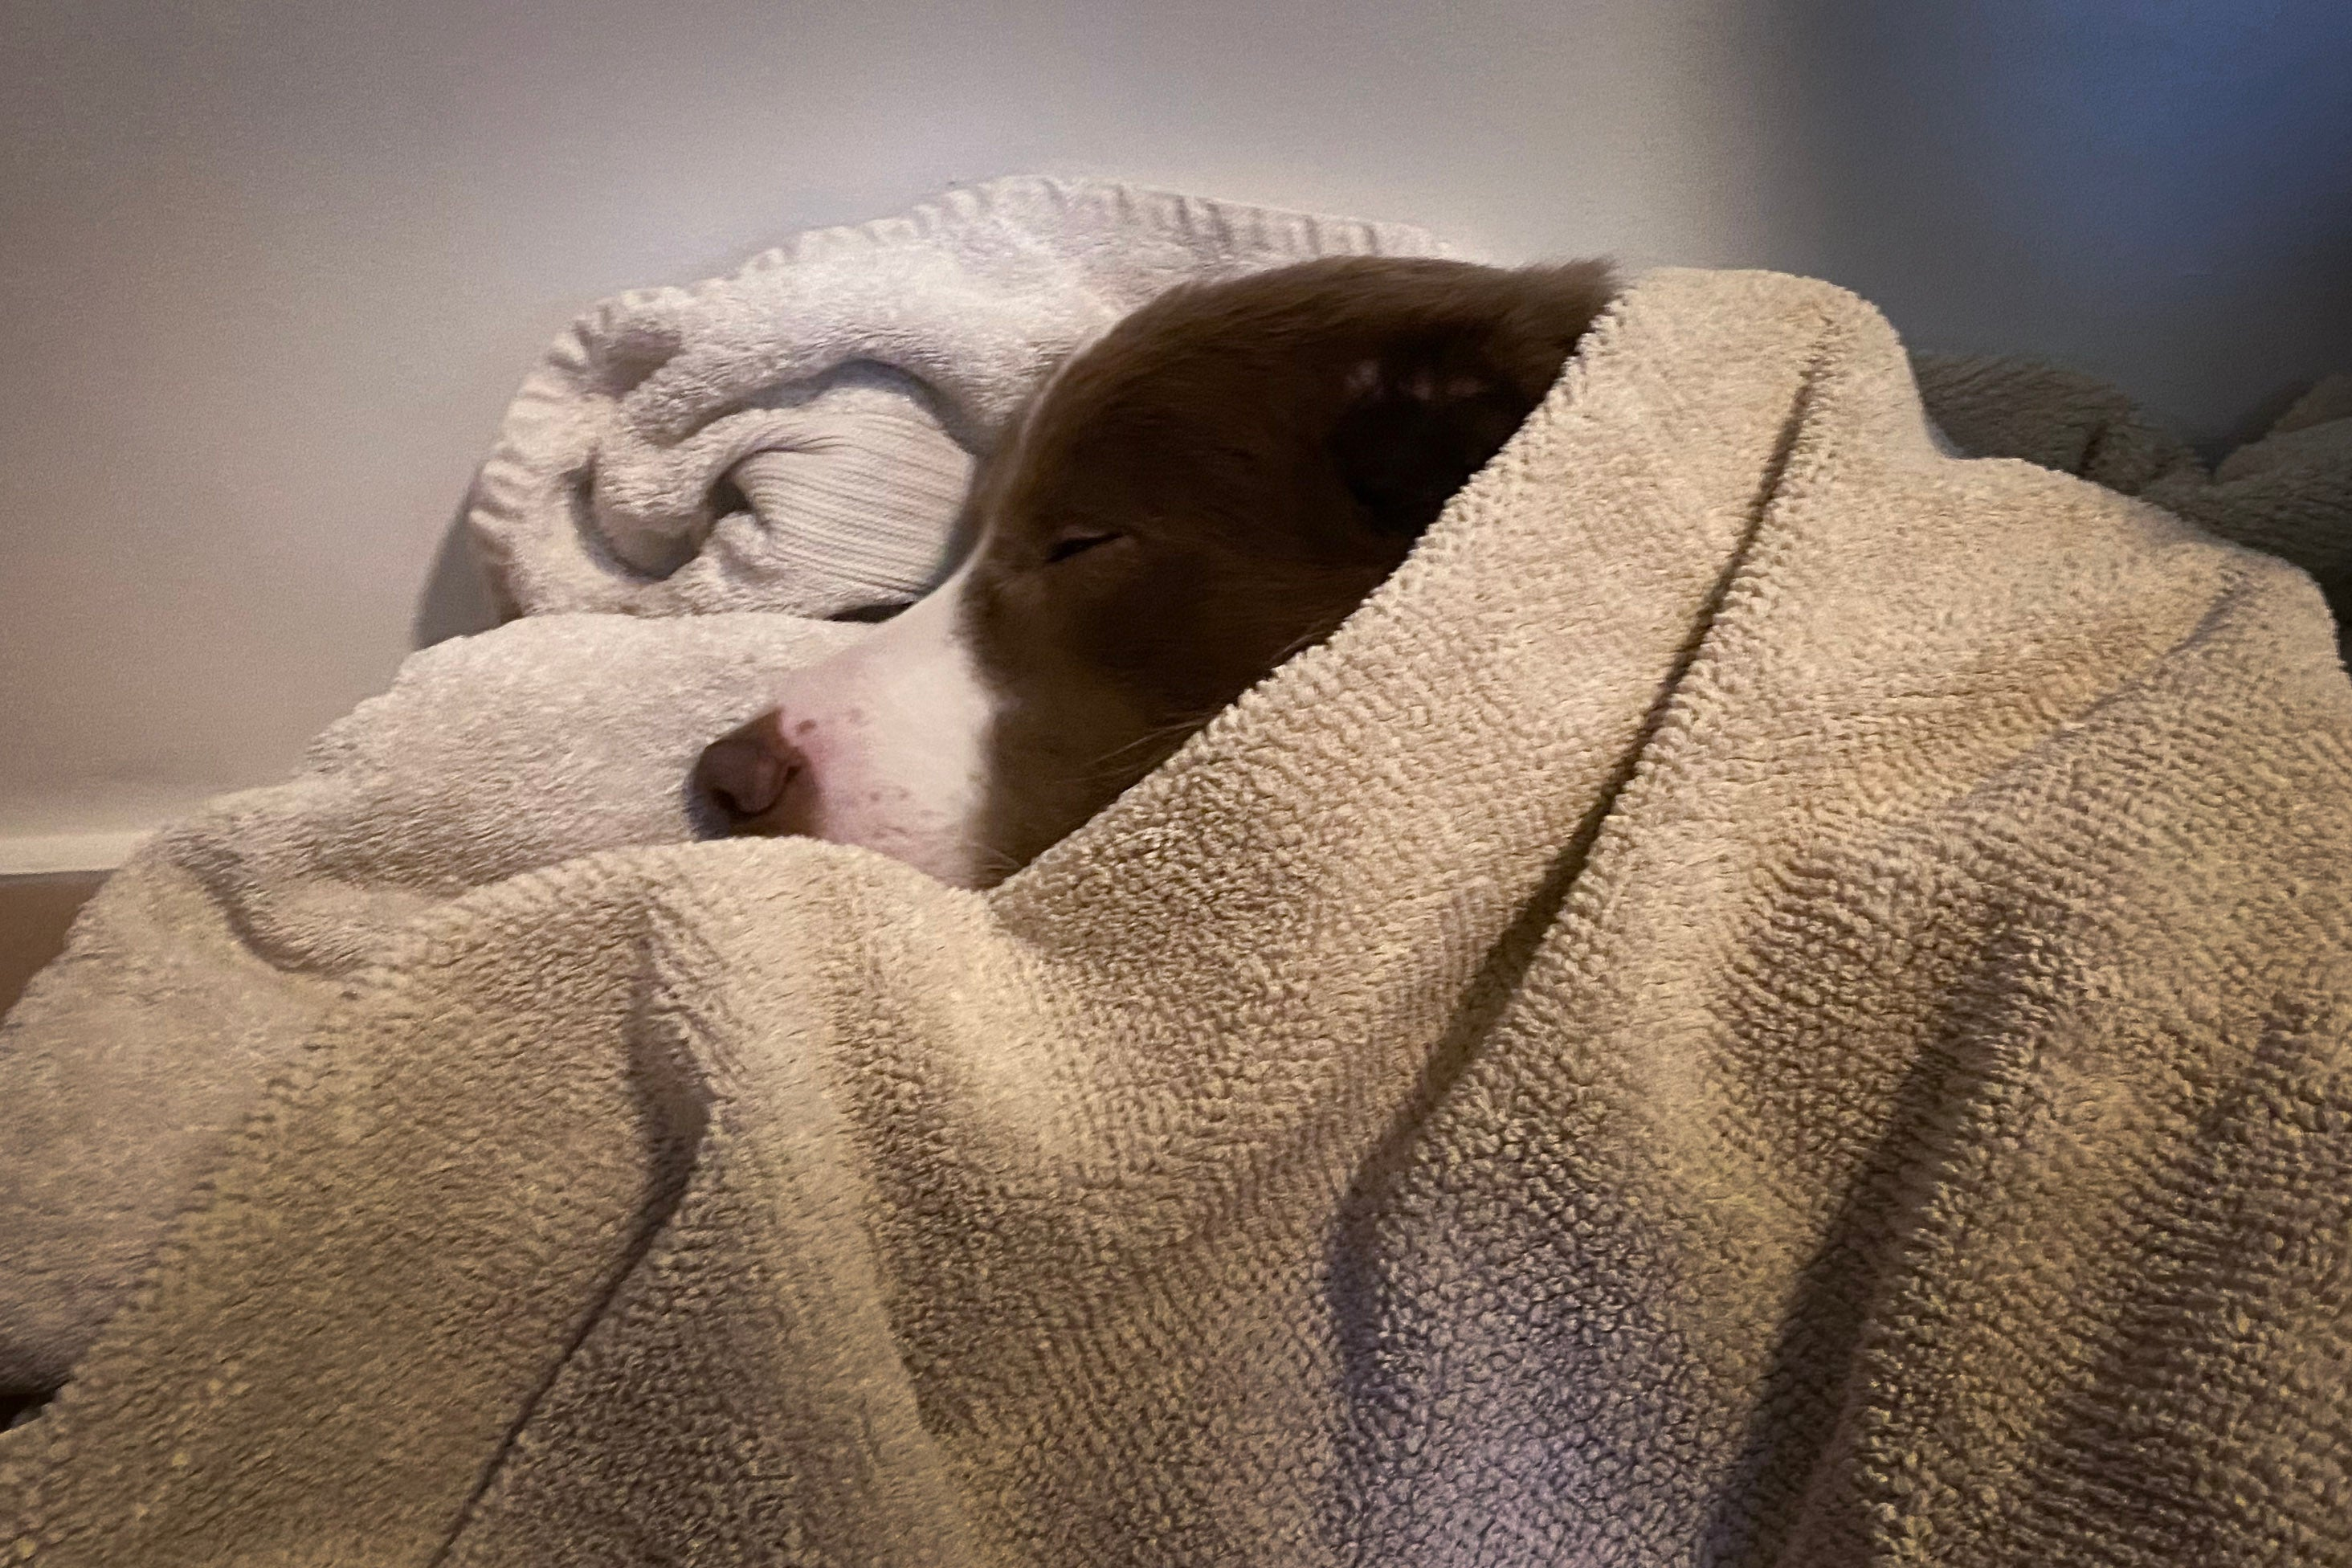 Pax the dog in recovery under blankets